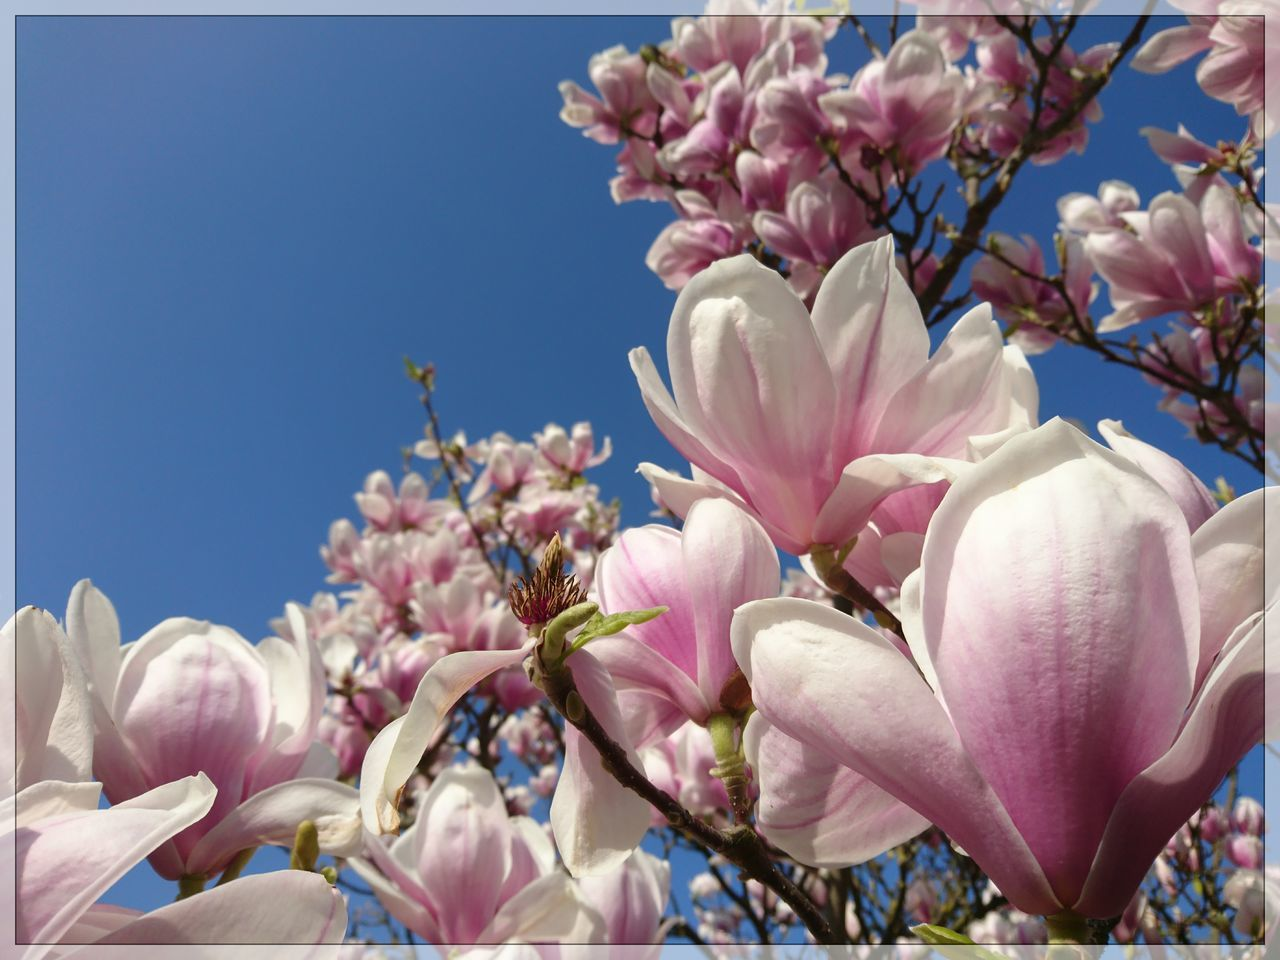 flower, petal, beauty in nature, fragility, blossom, nature, pink color, magnolia, freshness, growth, springtime, no people, botany, flower head, close-up, branch, day, outdoors, tree, blooming, low angle view, sky